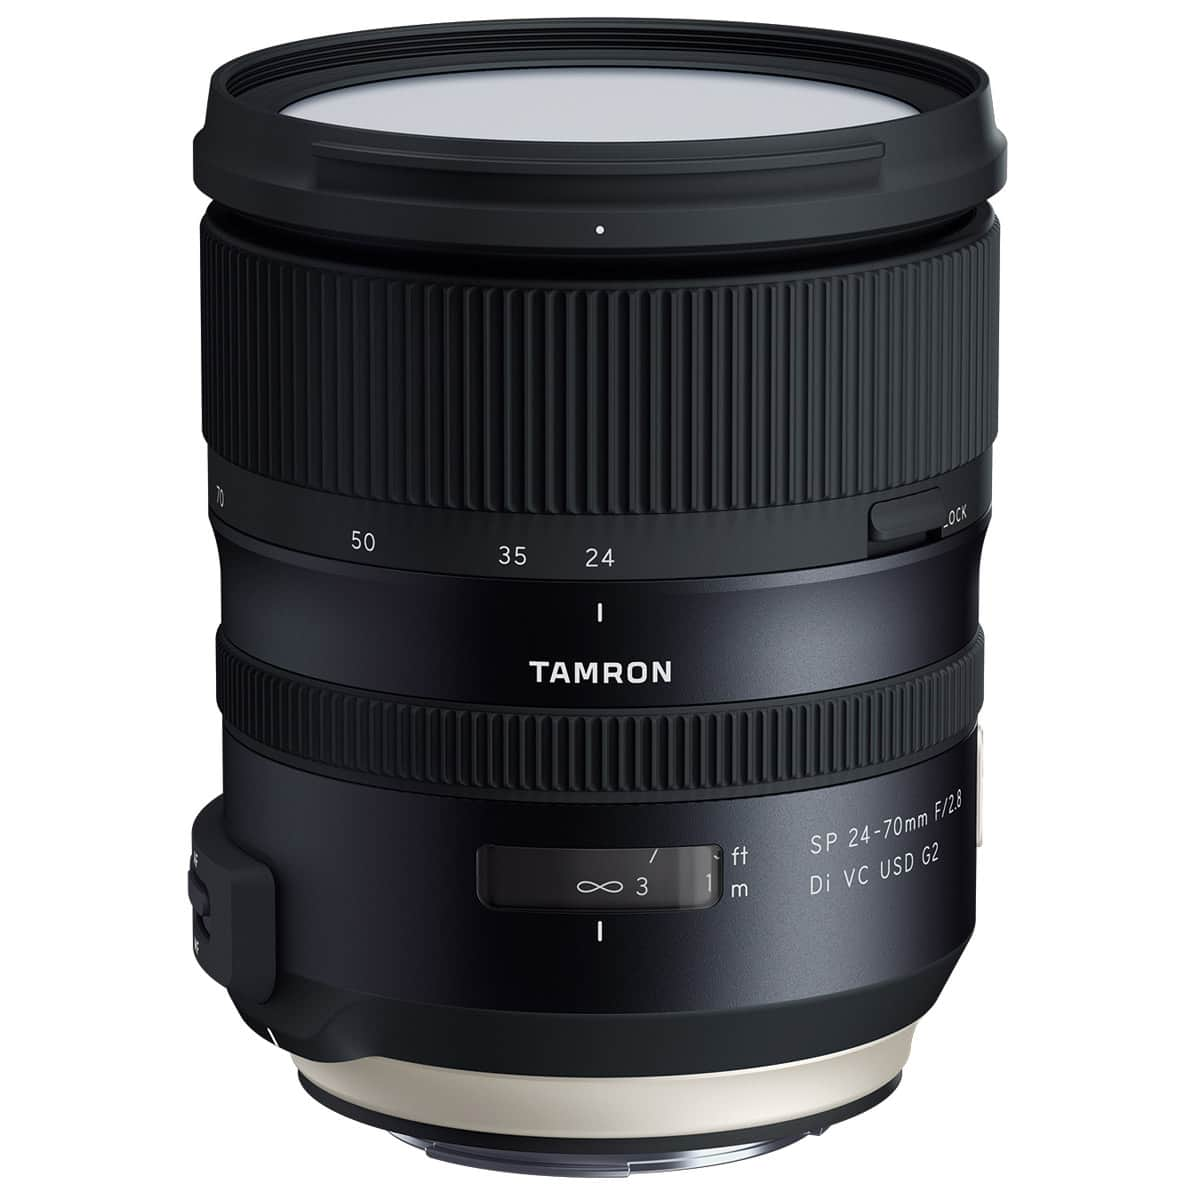 Tamron SP 24-70mm f/2.8 Di VC USD G2 Lens (Canon Mount) $760 or Less + Free Shipping